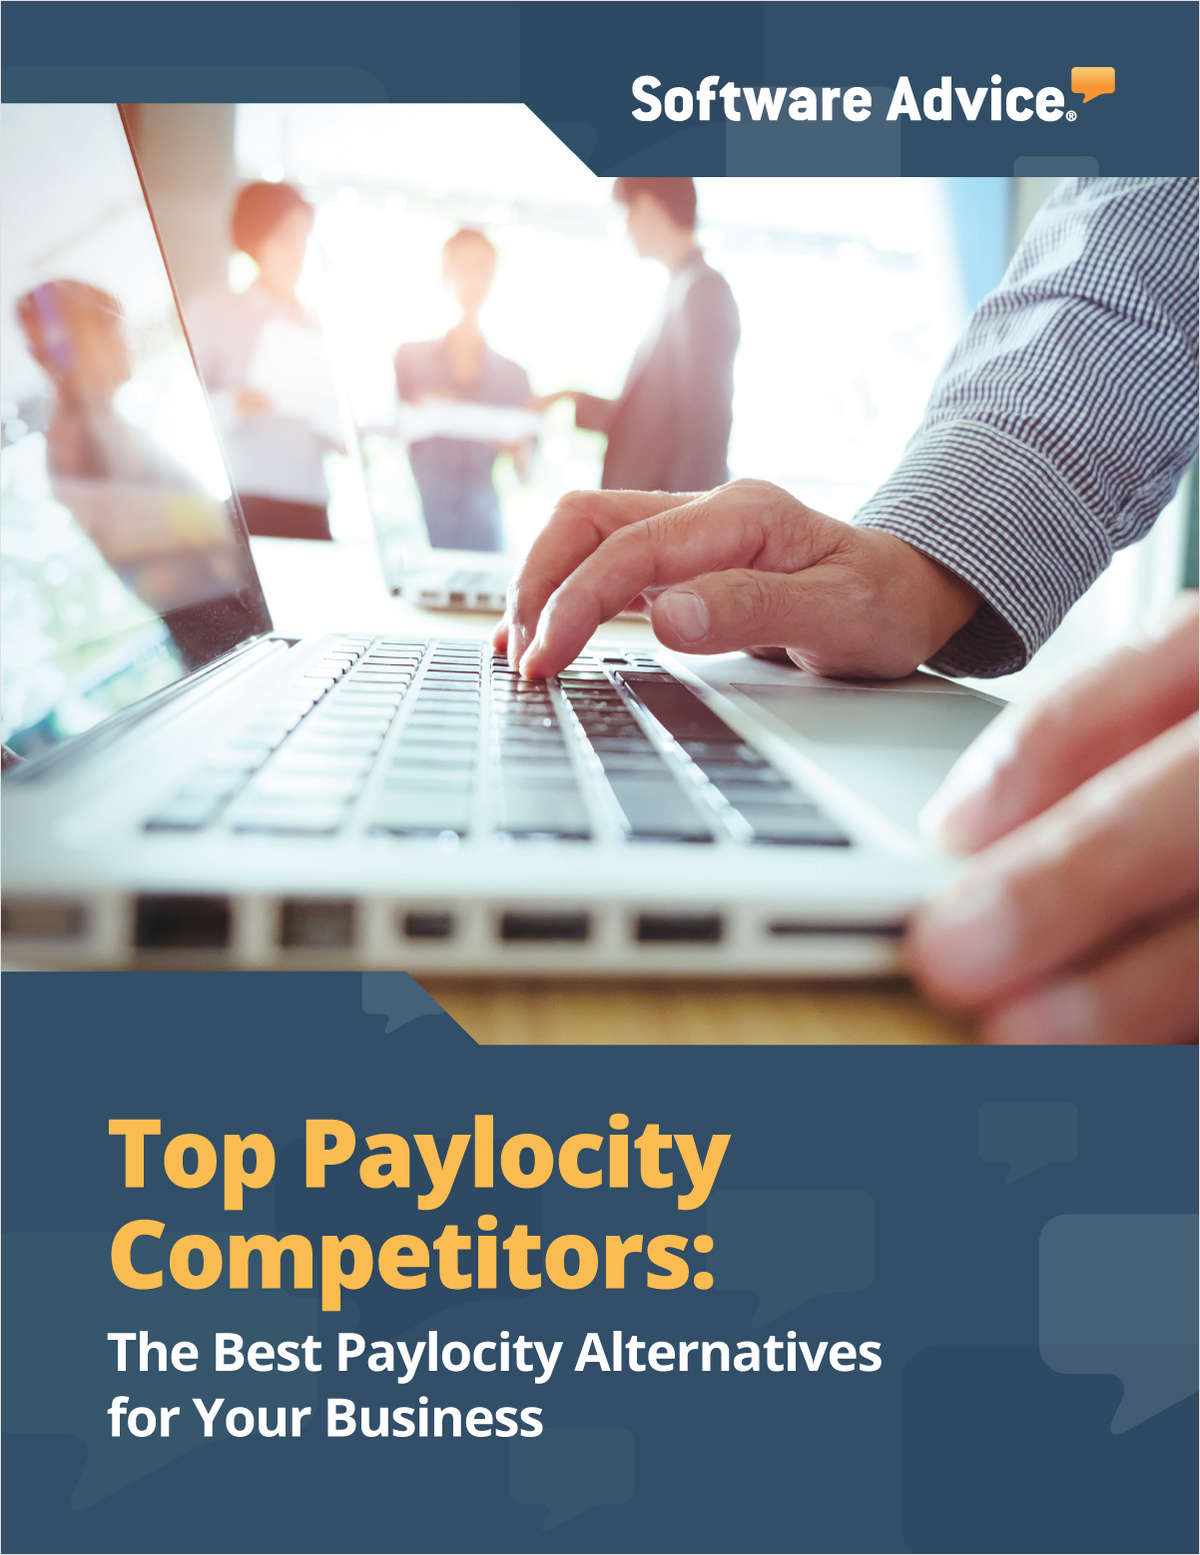 Software Advice Alternatives - Top 5 Paylocity Competitors